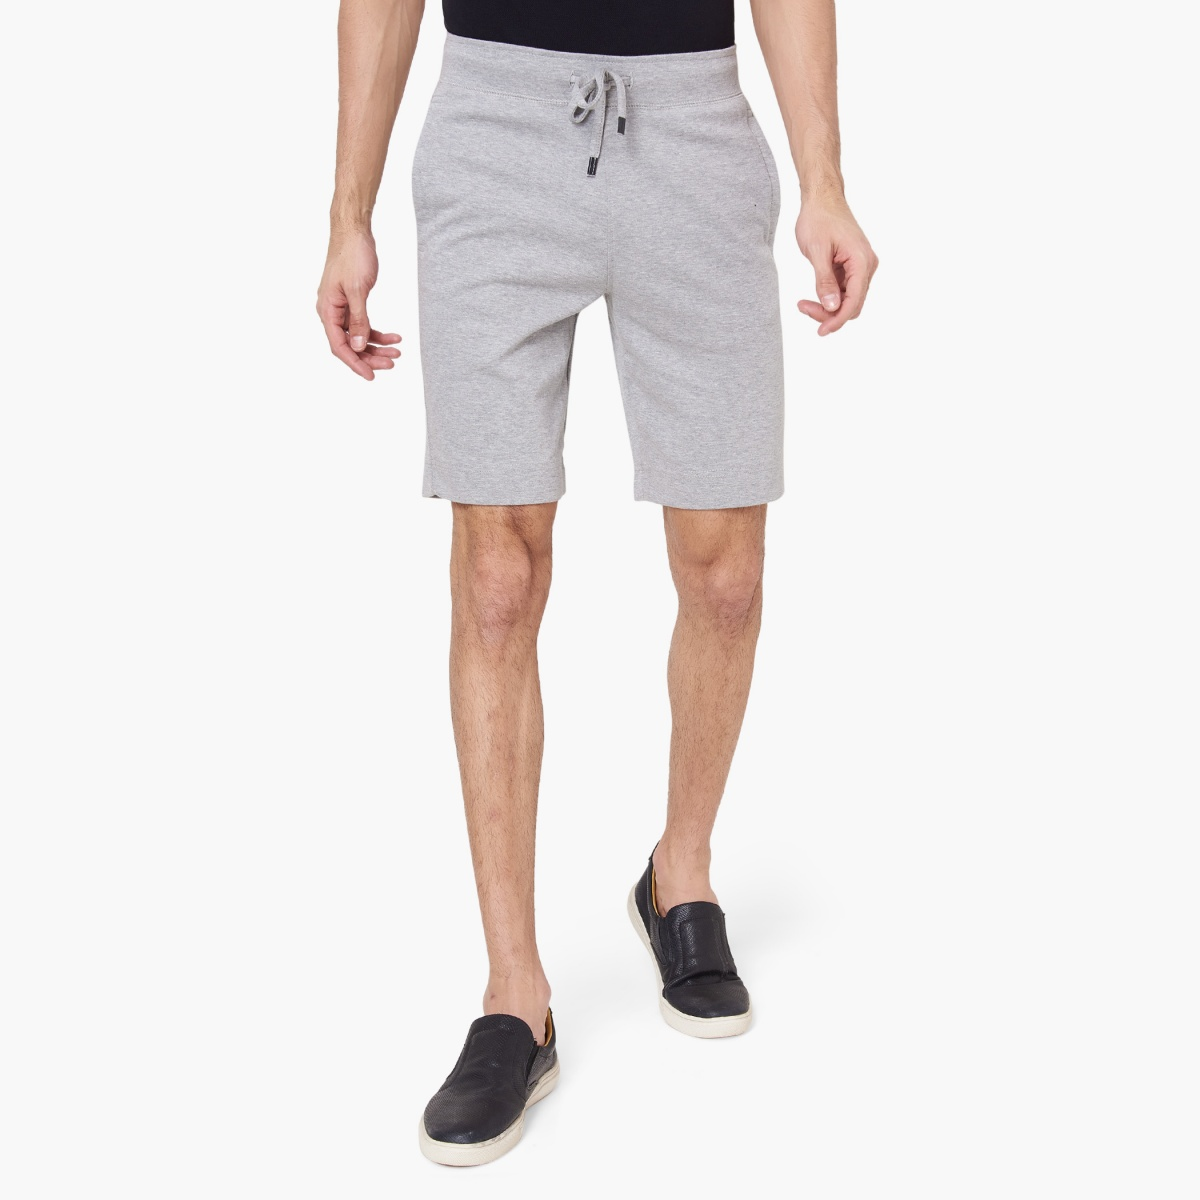 FAHRENHEIT Solid Knee Length Shorts